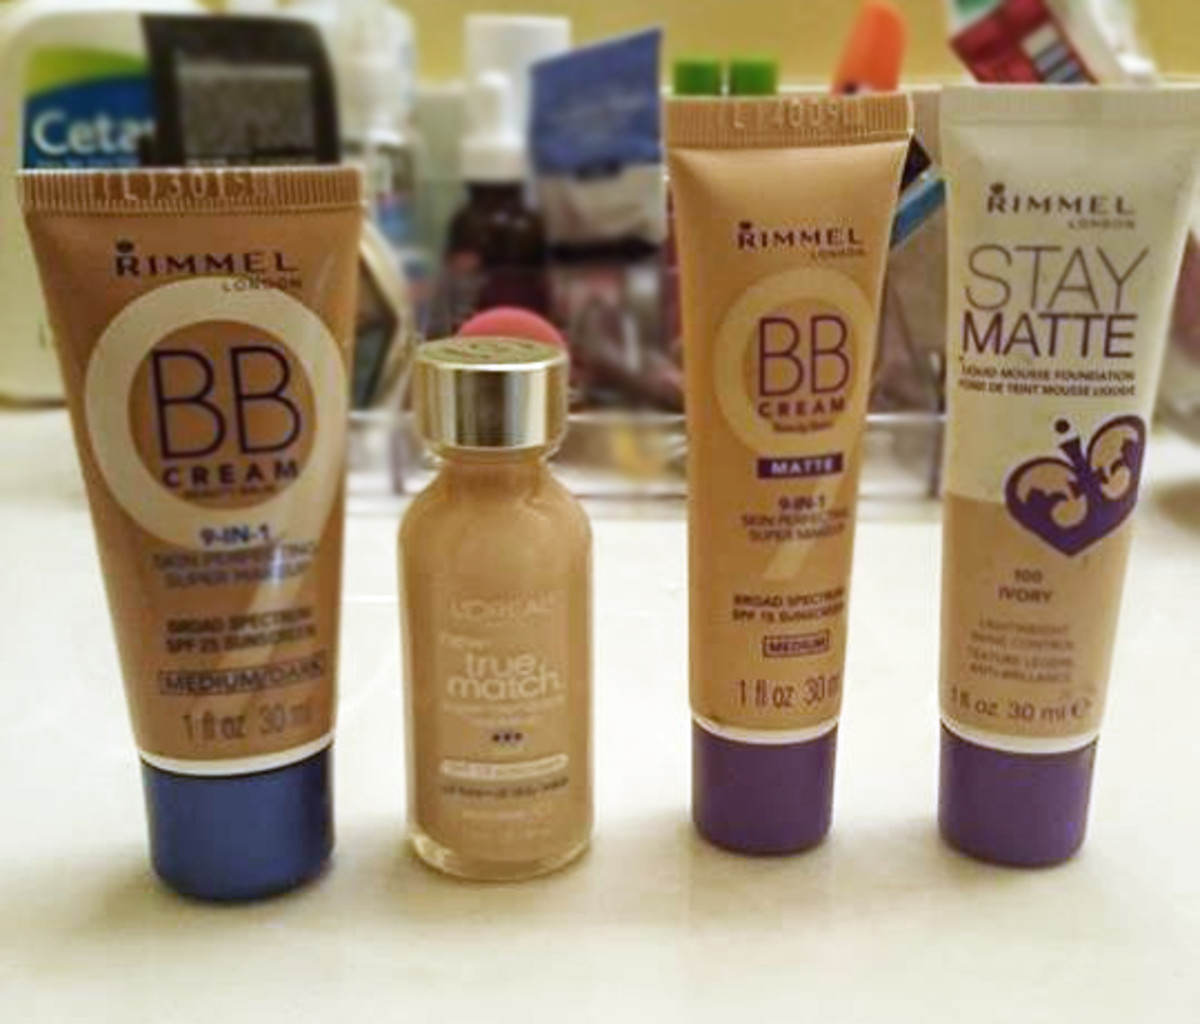 Rimmel's BB Creams and L'Oreal True Match Foundation, shown side by side.